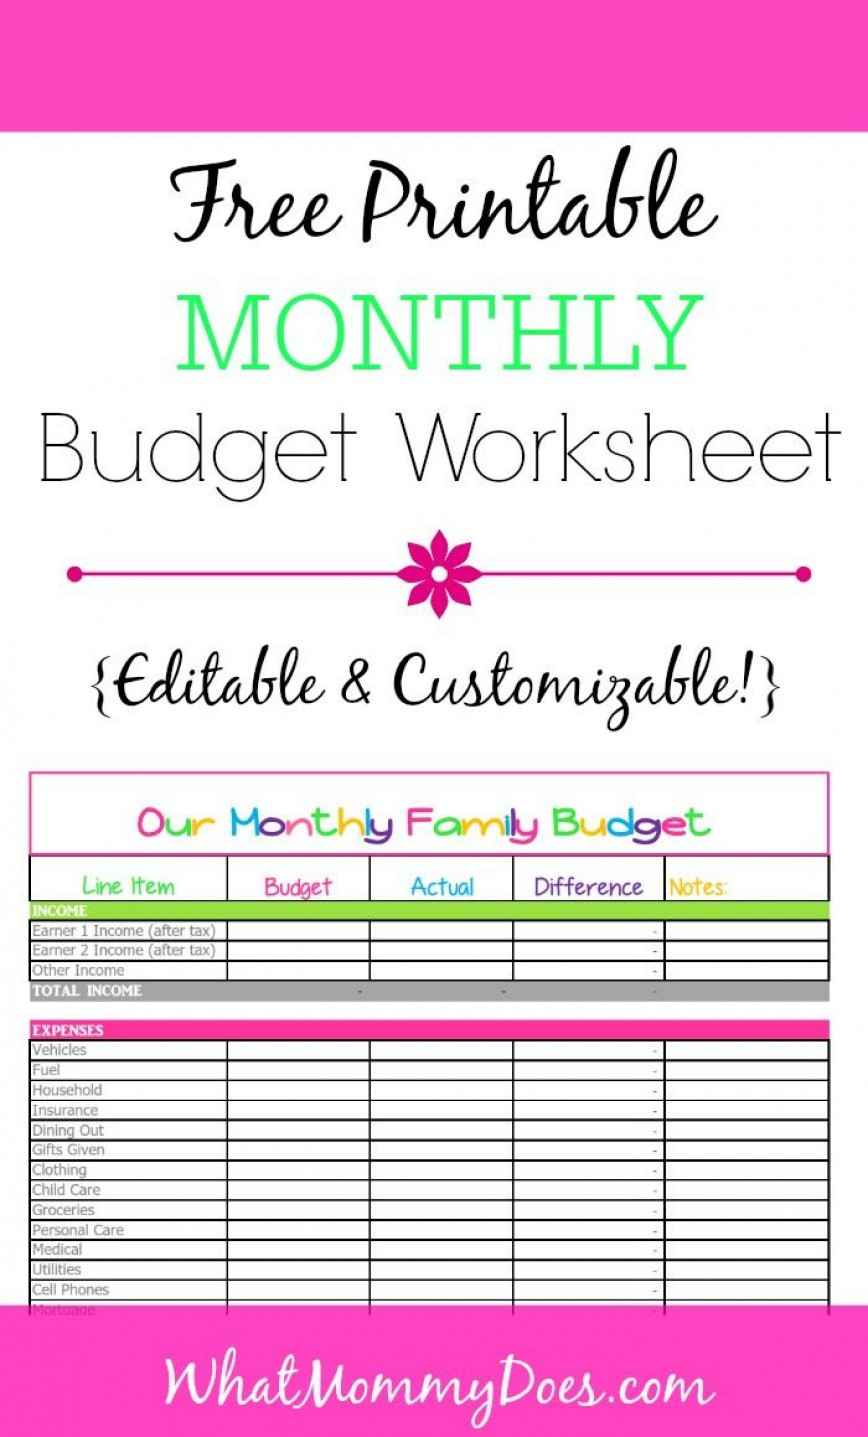 006 Remarkable Free Printable Blank Monthly Budget Sheet Image  Sheets Template Worksheet